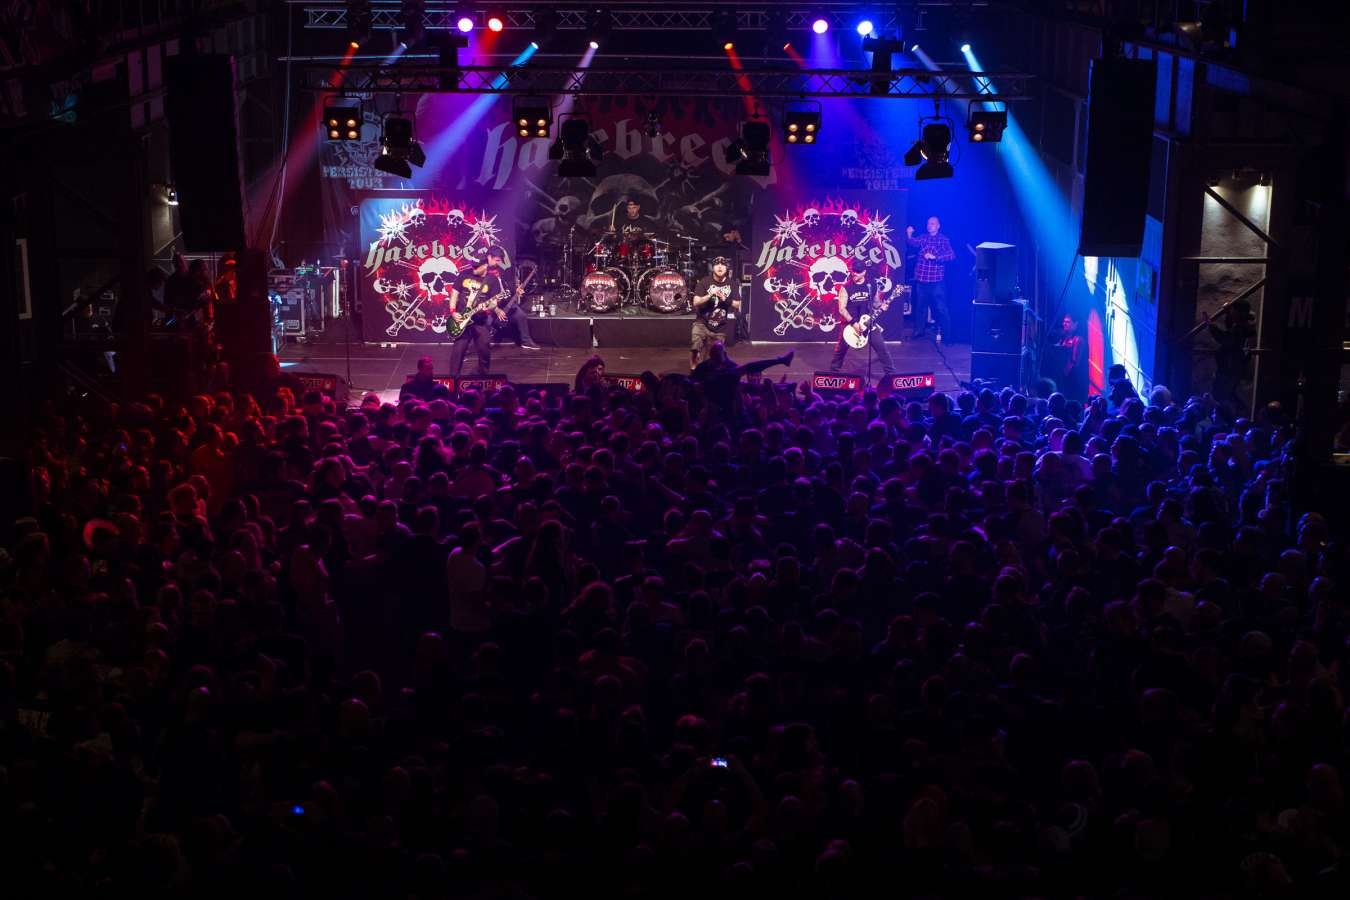 Jamey Jasta live images with Hatebreed